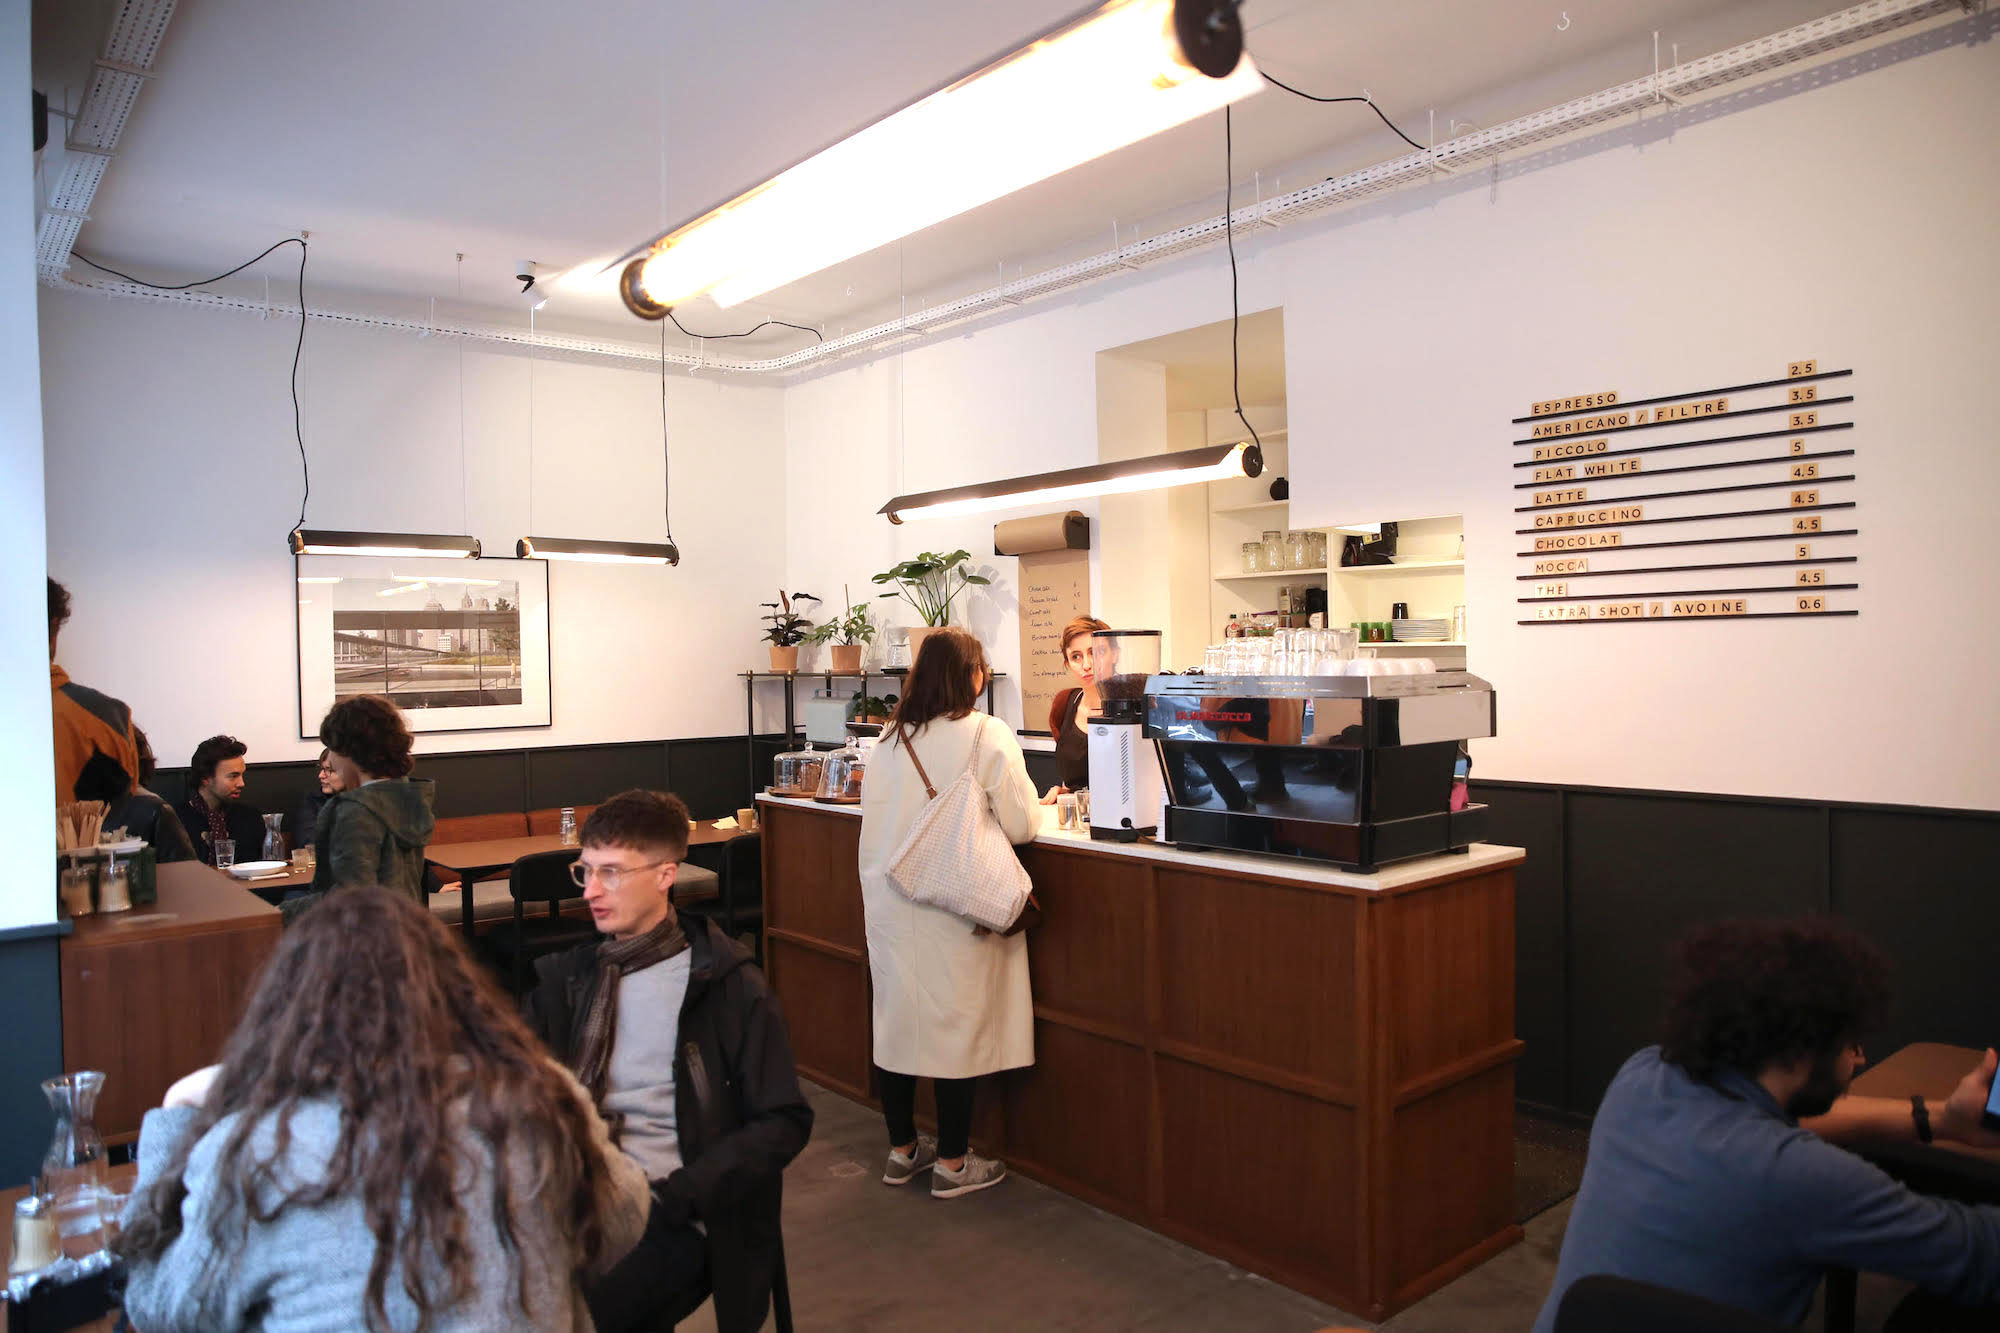 Inside the Residence Kann Coffee Shop by Canal St Martin in Paris